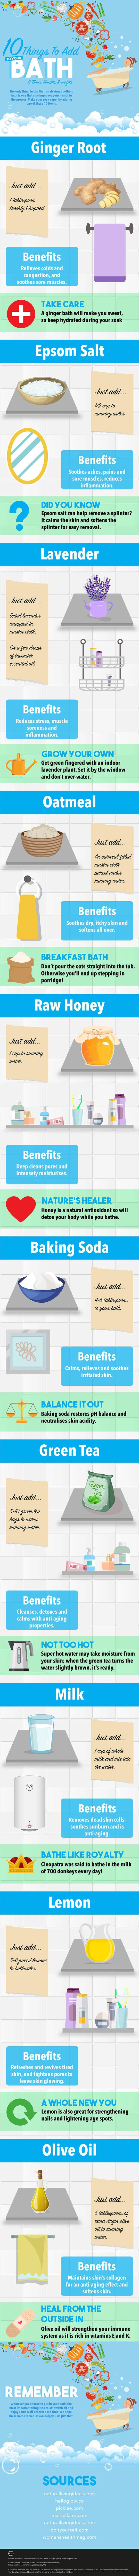 10 thing to add to a bath